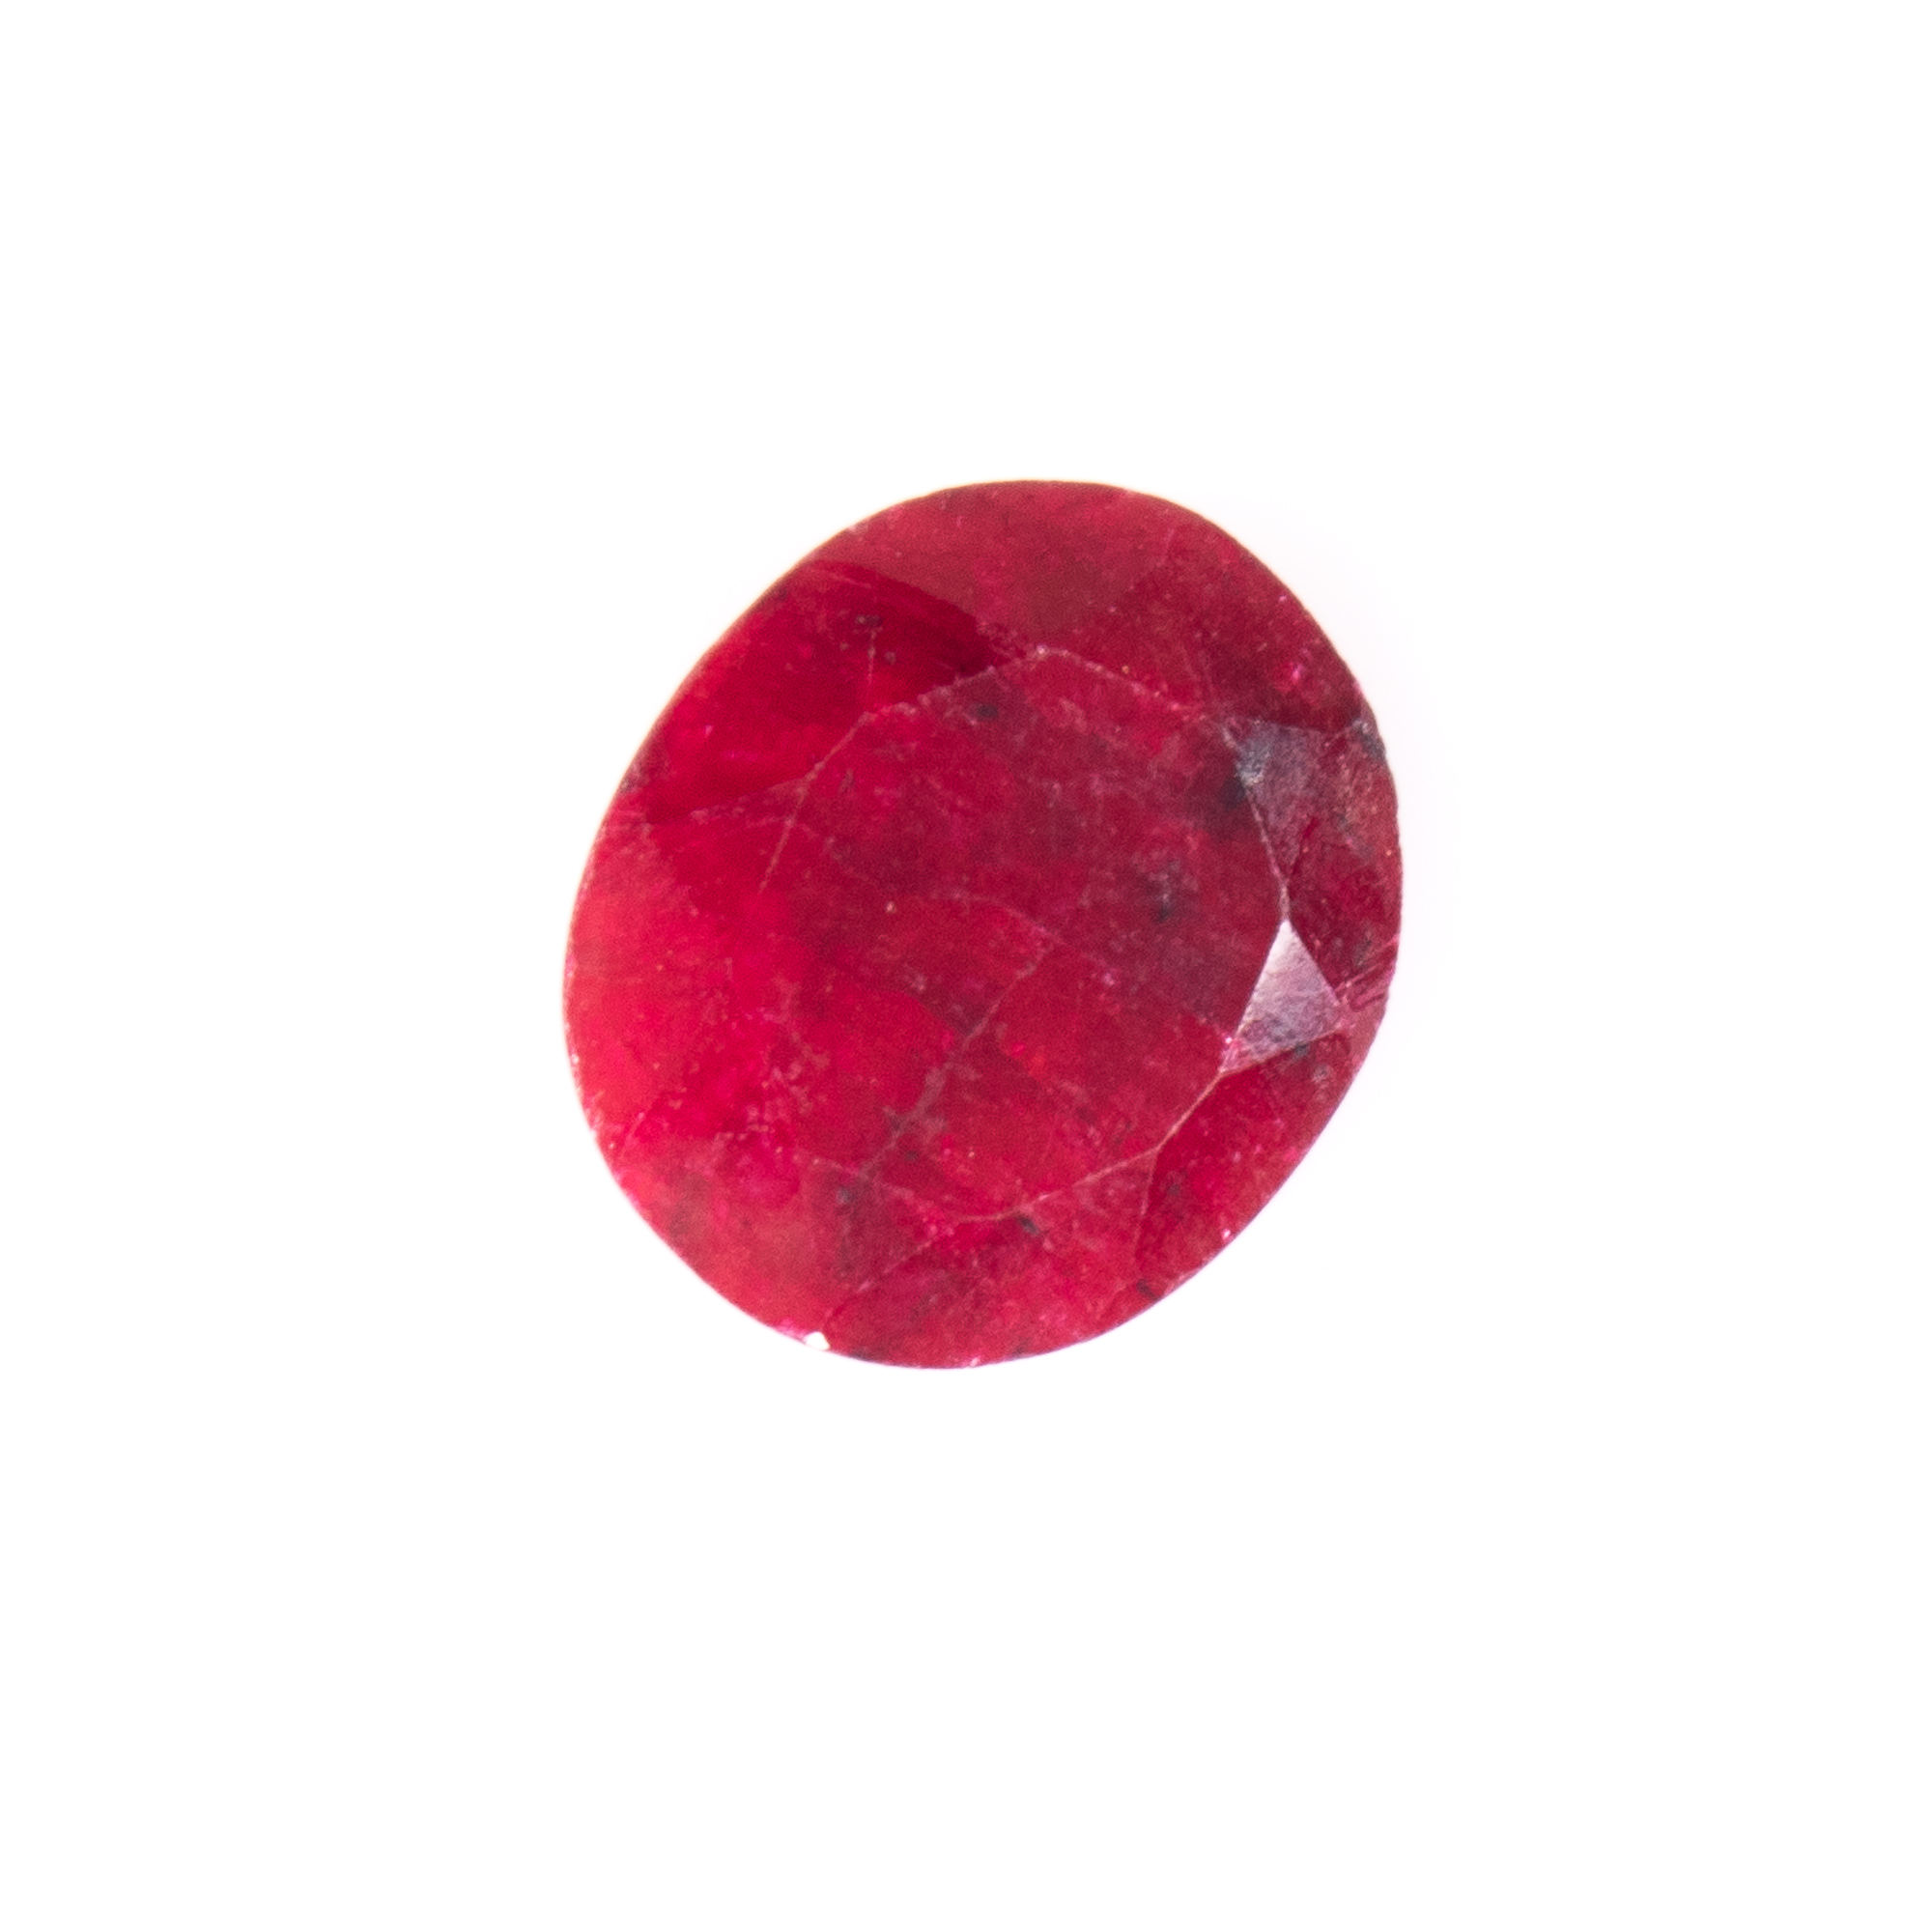 Natural Oval-cut Ruby Gemstone - Image 6 of 6